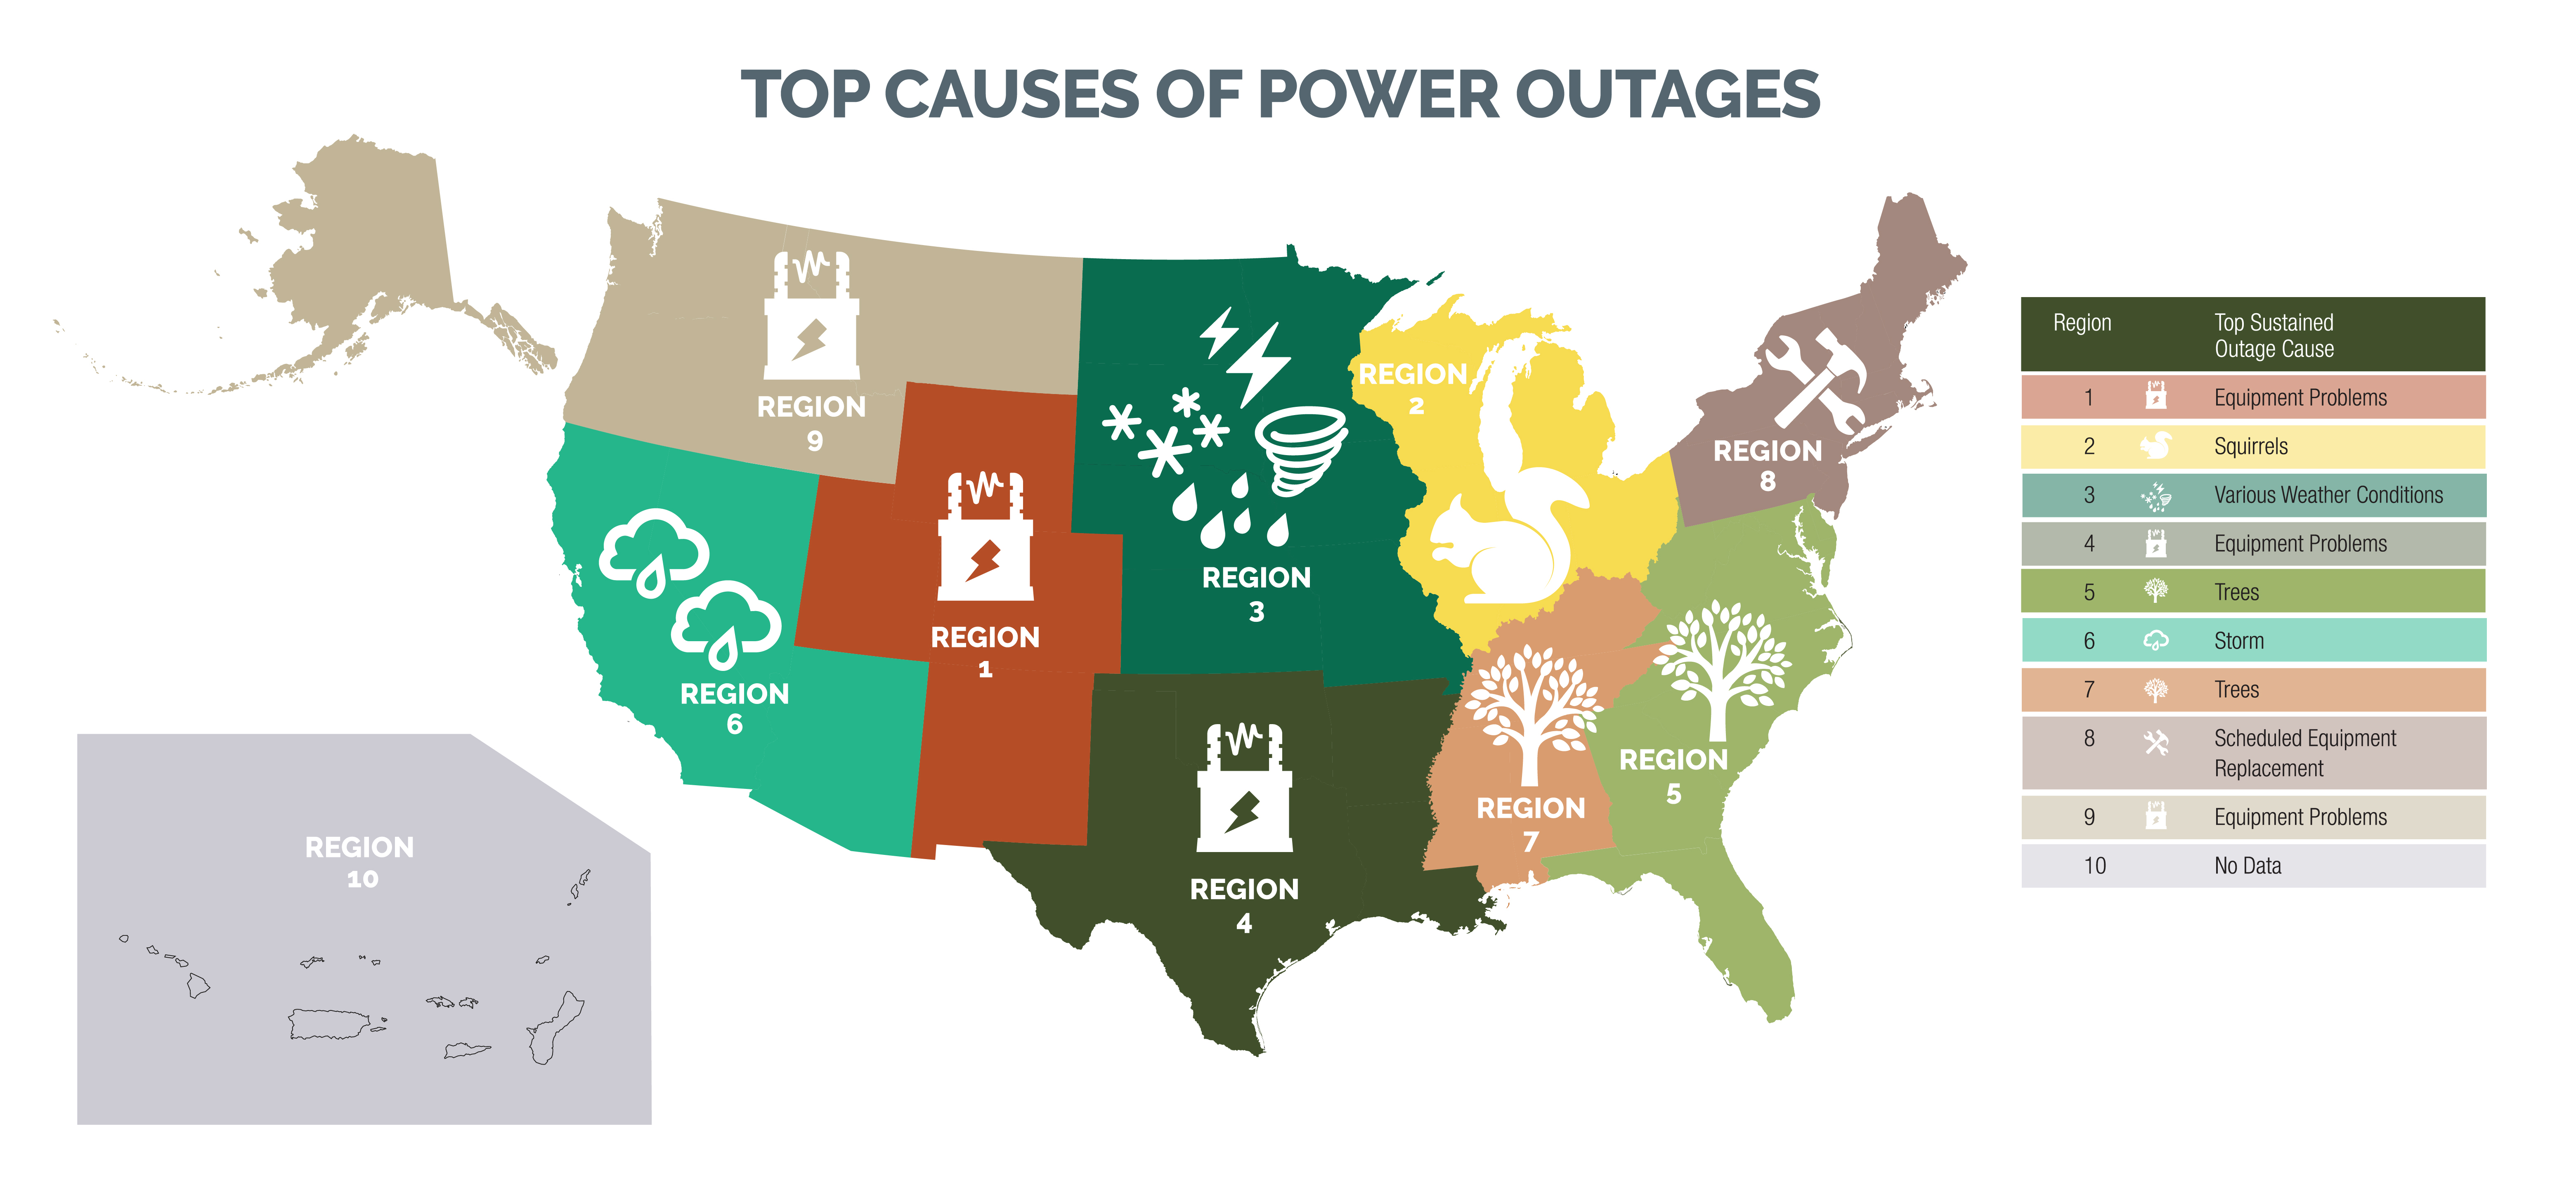 Top cause of power outage by region